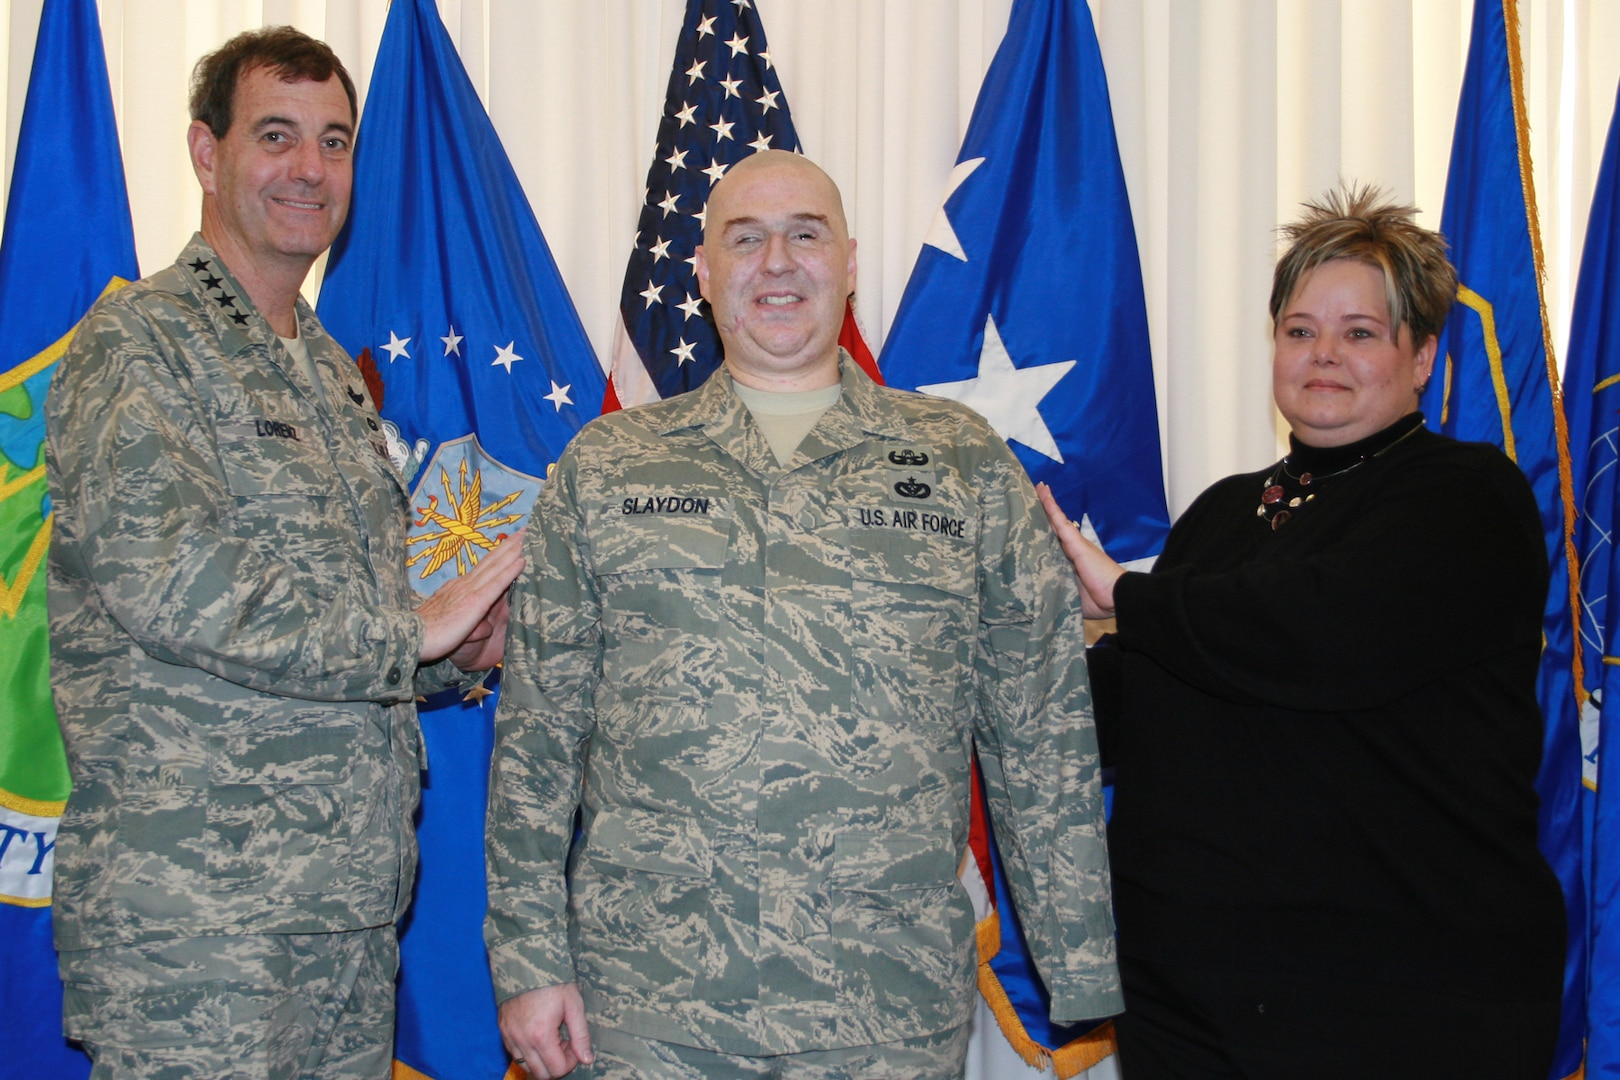 Gen. Stephen Lorenz (left), Air Education and Training Command commander, promotes Staff Sgt. Matt Slaydon to technical sergeant through the Stripes To Exceptional Performers, or STEP, program Dec. 19 at AETC Headquarters. Sergeant Slaydon's wife, Annette, helps the general tack on the stripe. General Lorenz conducted the on-the-spot promotion on behalf of Brig. Gen. Kurt Neubauer, 56th Fighter Wing commander, which is Sergeant Slaydon's home unit. He has been in San Antonio for more than a year receiving medical care for wounds he suffered Oct. 24, 2007, in Iraq when a bomb exploded next to him during his duty as an explosive ordnance disposal specialist.  Sergeant Slaydon received the promotion for the extensive Air Force ambassadorship and mentorship he has conducted during his year-long recovery. (Photo by Michelle Deleon)